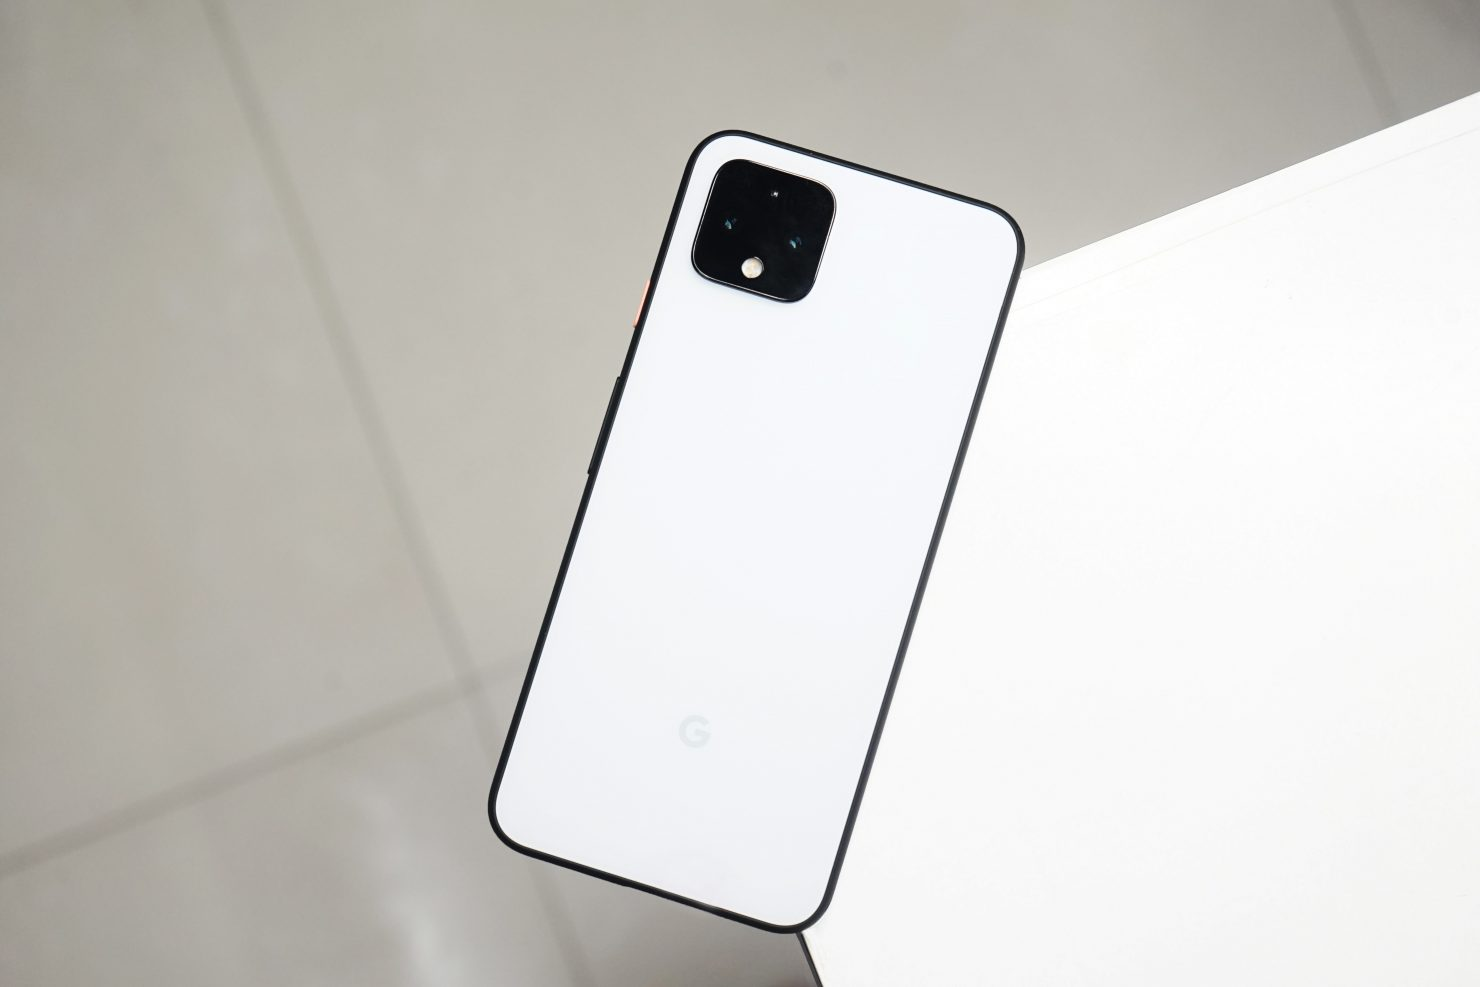 Google Pixel 4 XL – Specification and Features